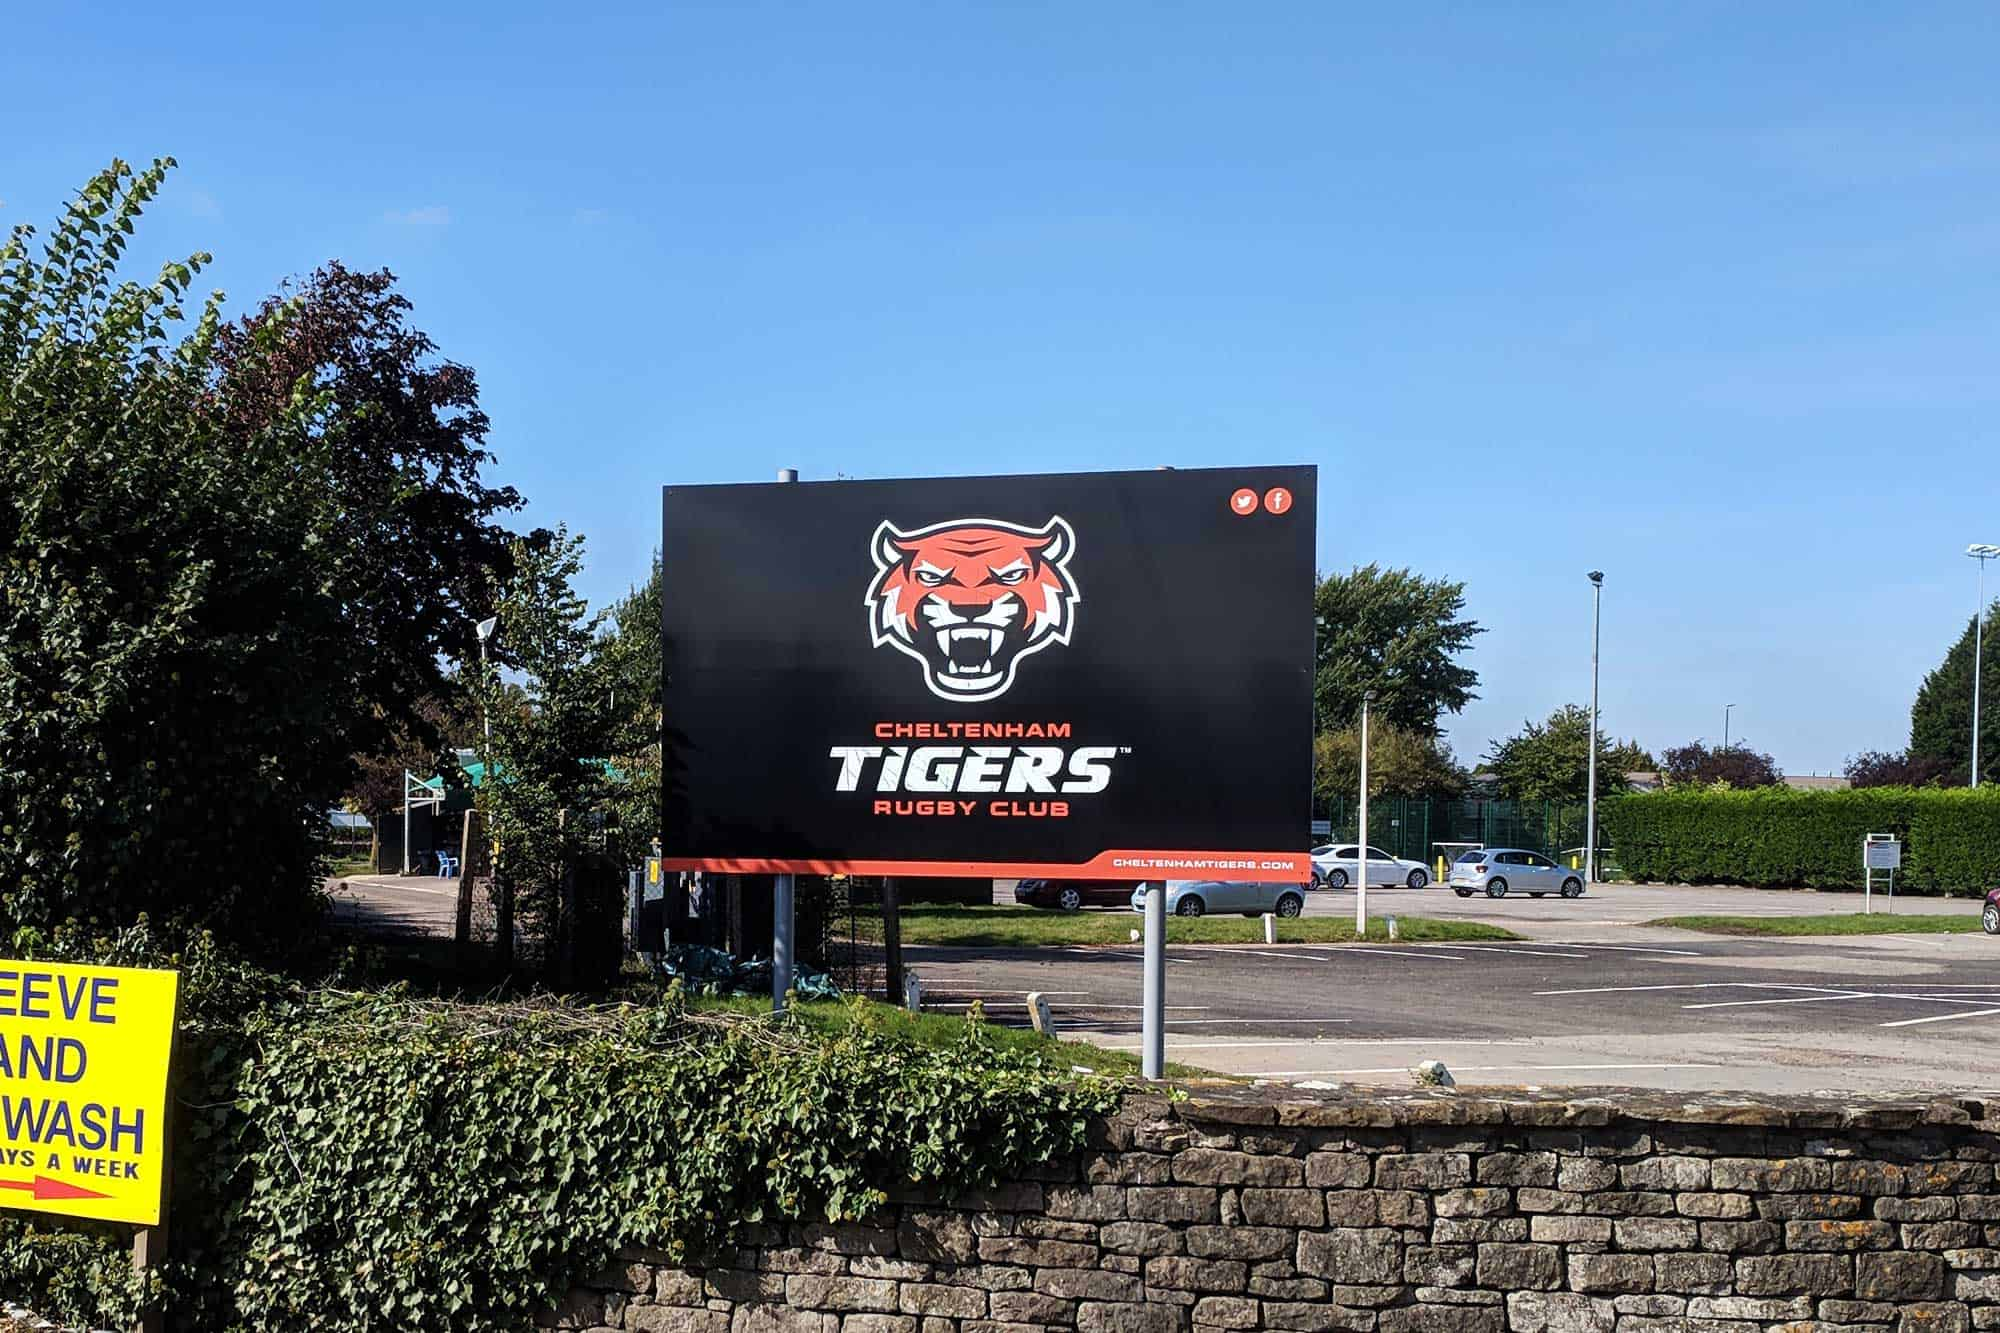 Post mounted Tigers signage